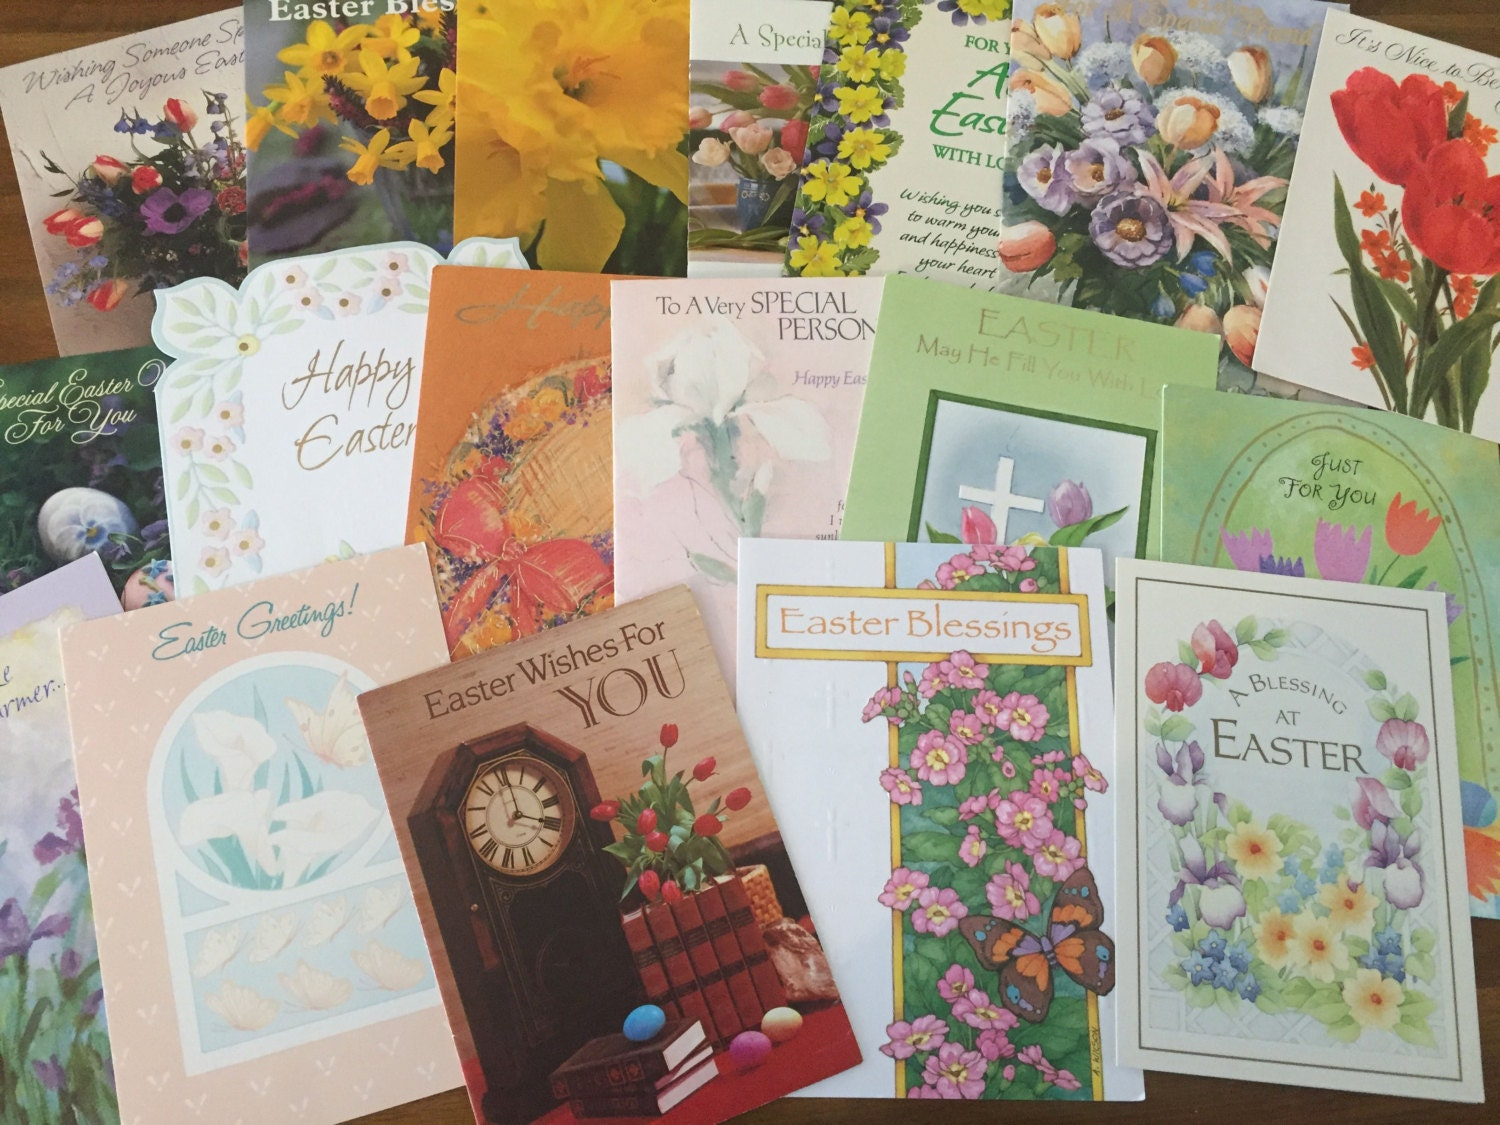 18 vintage easter cards used greeting cards from the 1970s sold by murieljoy kristyandbryce Choice Image